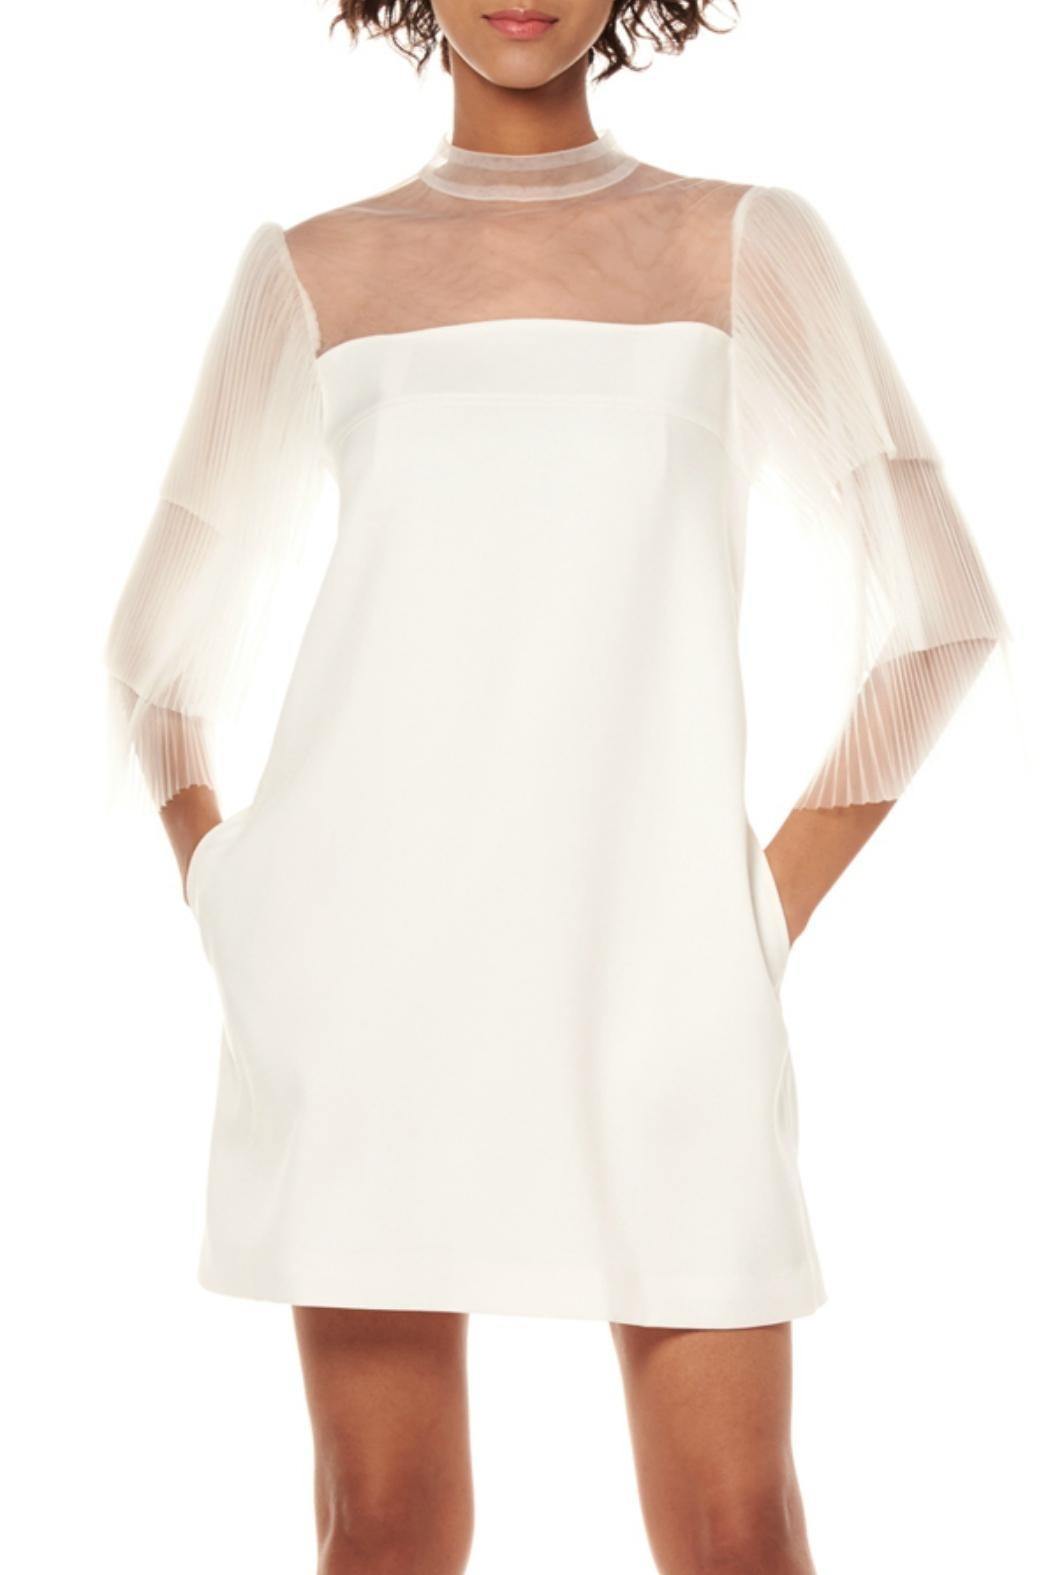 Gracia Pleats Sleeve Dress - Front Cropped Image